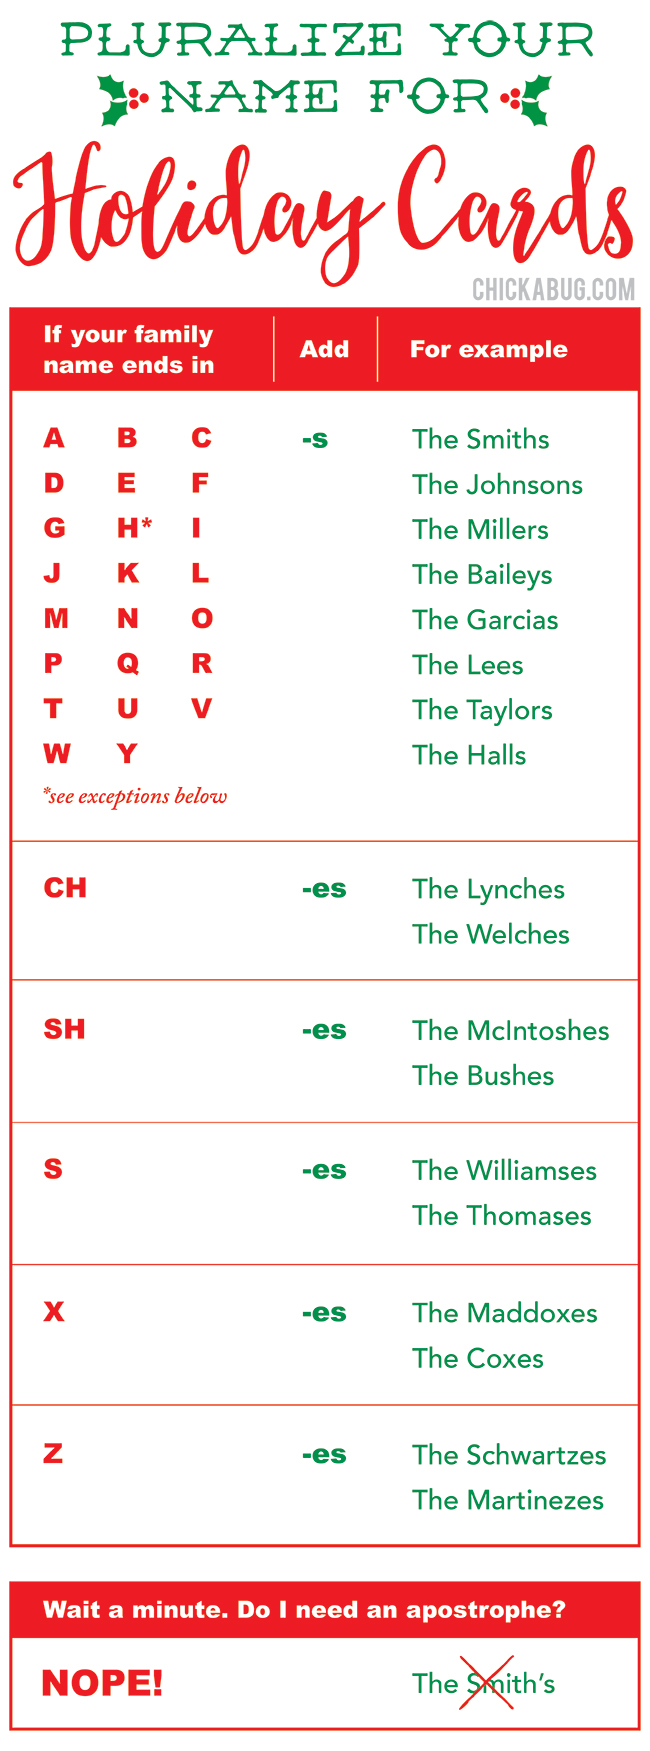 How to Pluralize Your Last Name for Holiday Cards. It's such a common question! Never wonder what to do again with this handy dandy chart!